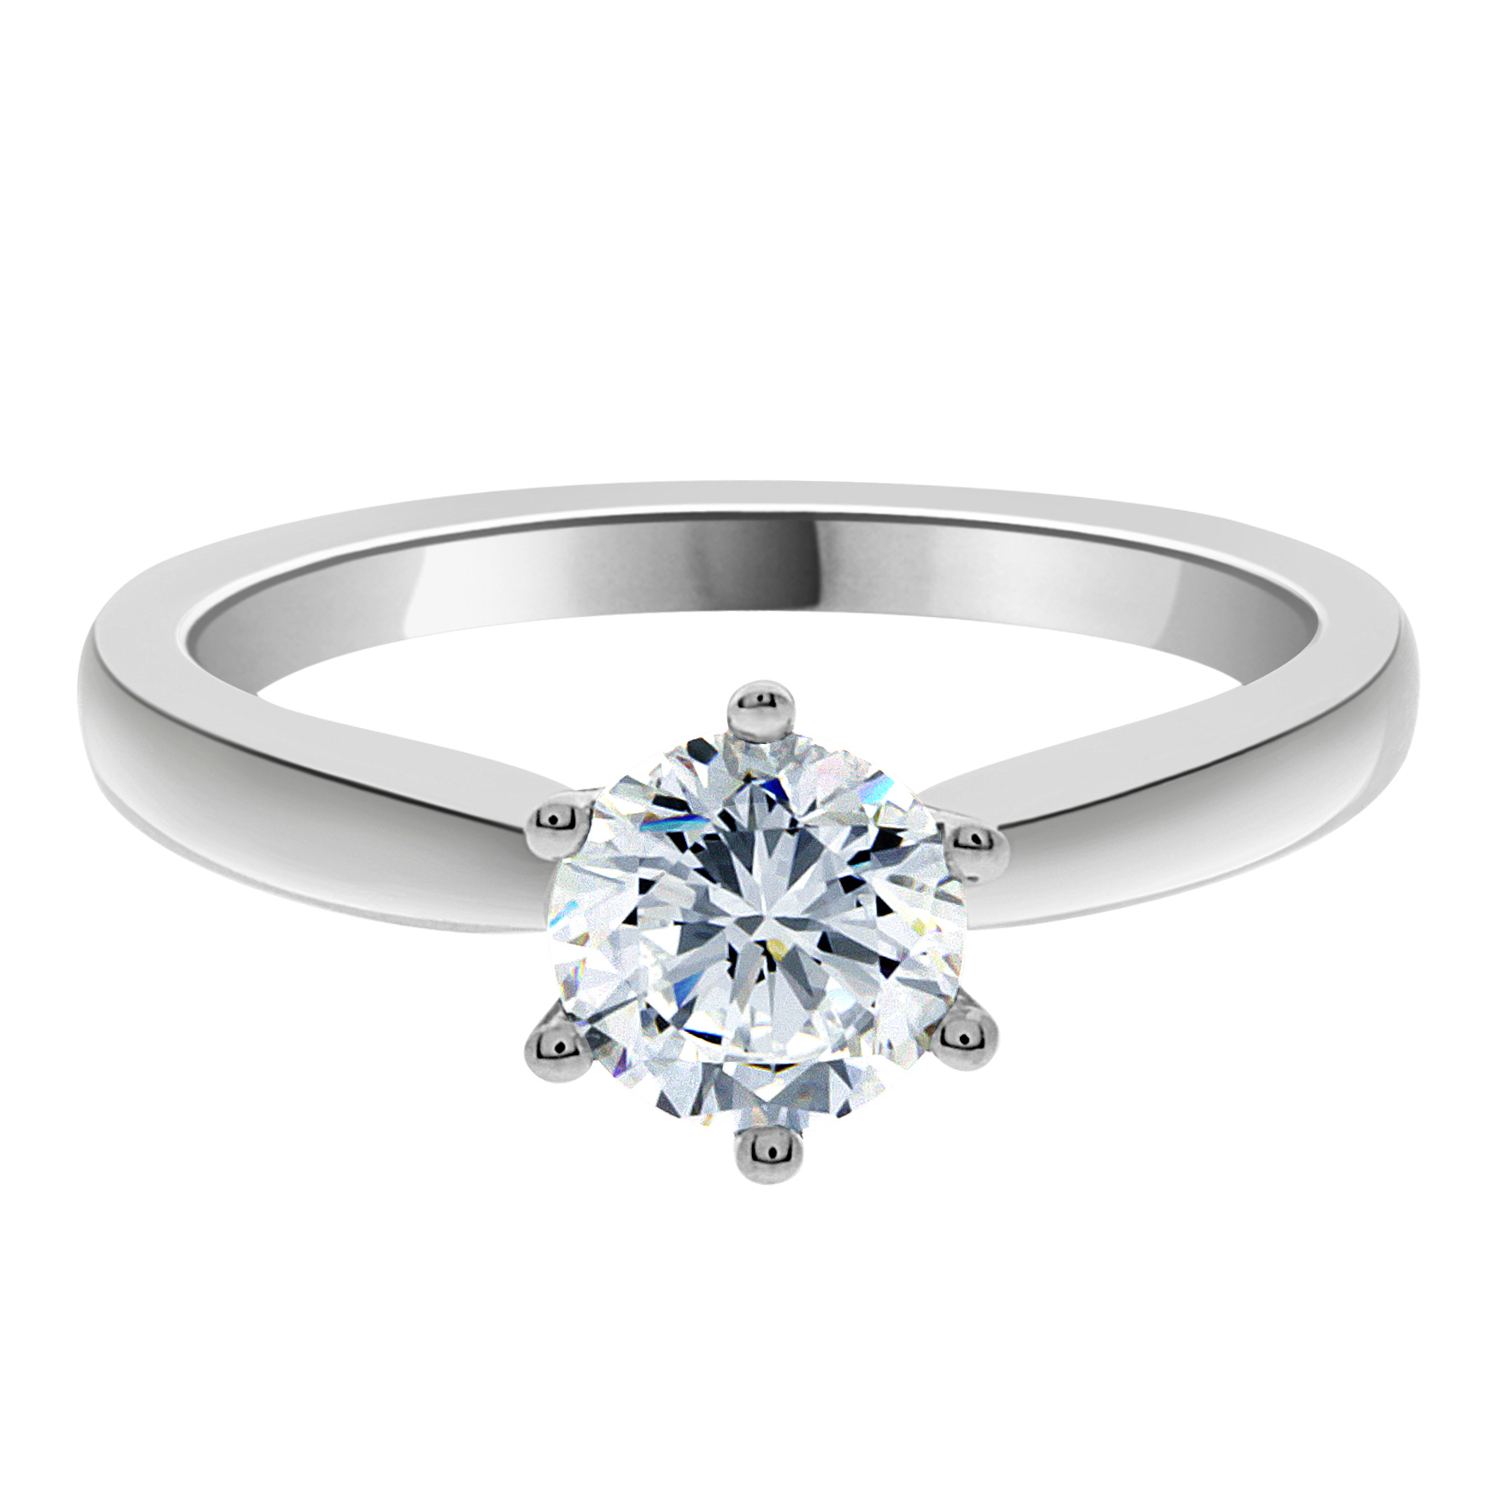 semi jewellery ring channel white pin setting gold mount settings engagement diamond marquise